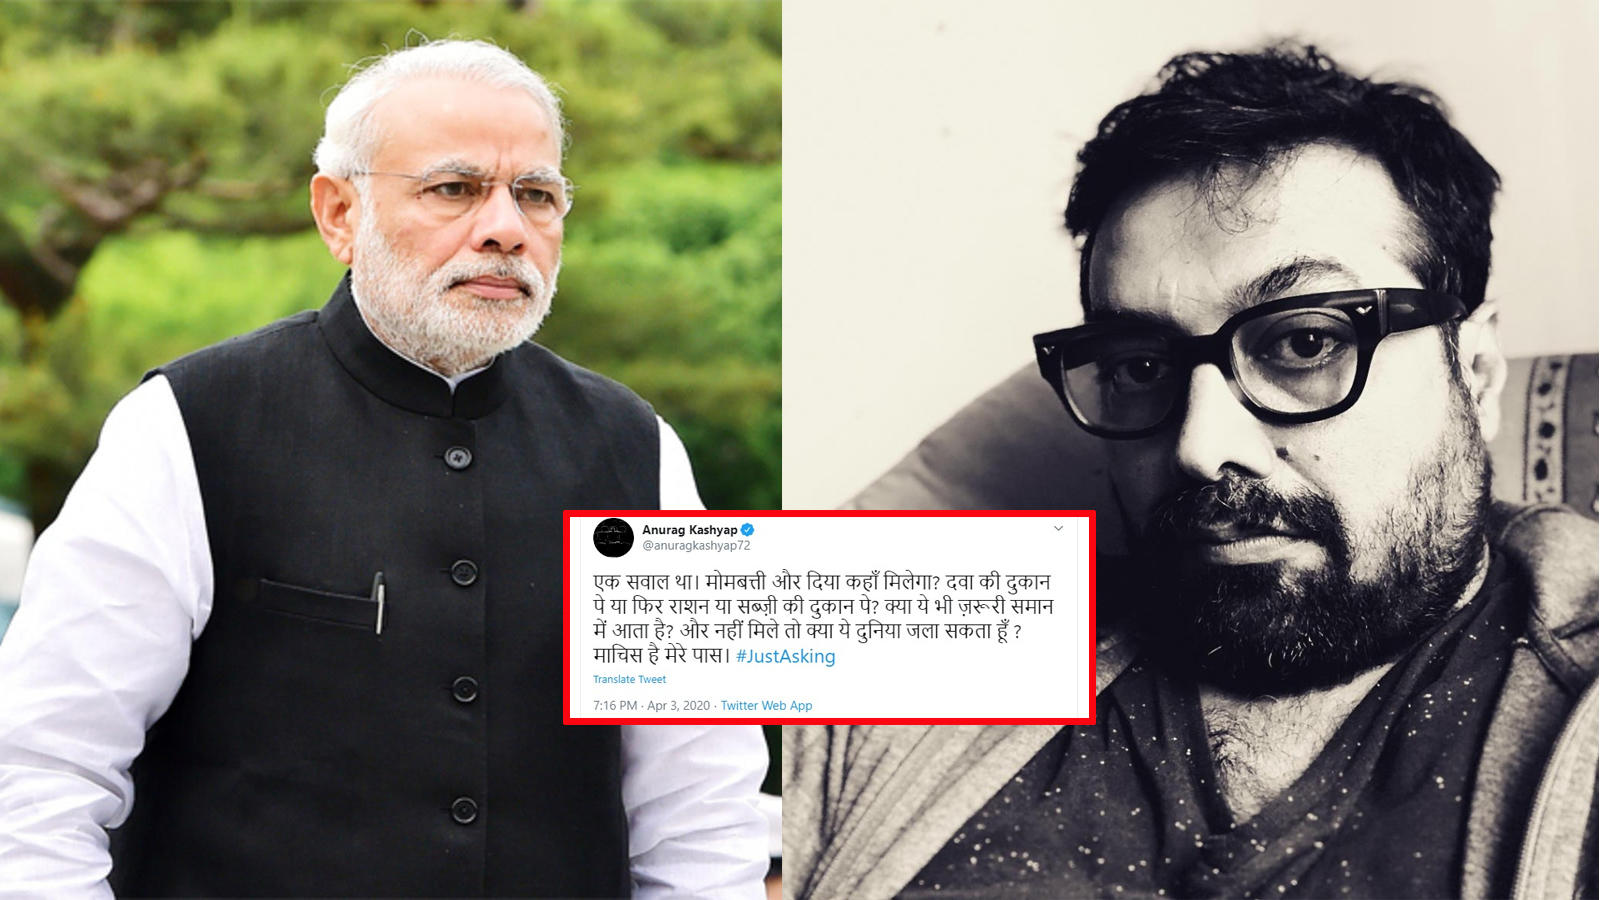 anurag-kashyap-gets-schooled-by-a-police-officer-for-mocking-prime-minister-narendra-modis-light-a-candle-initiative-amid-coronavirus-lockdown